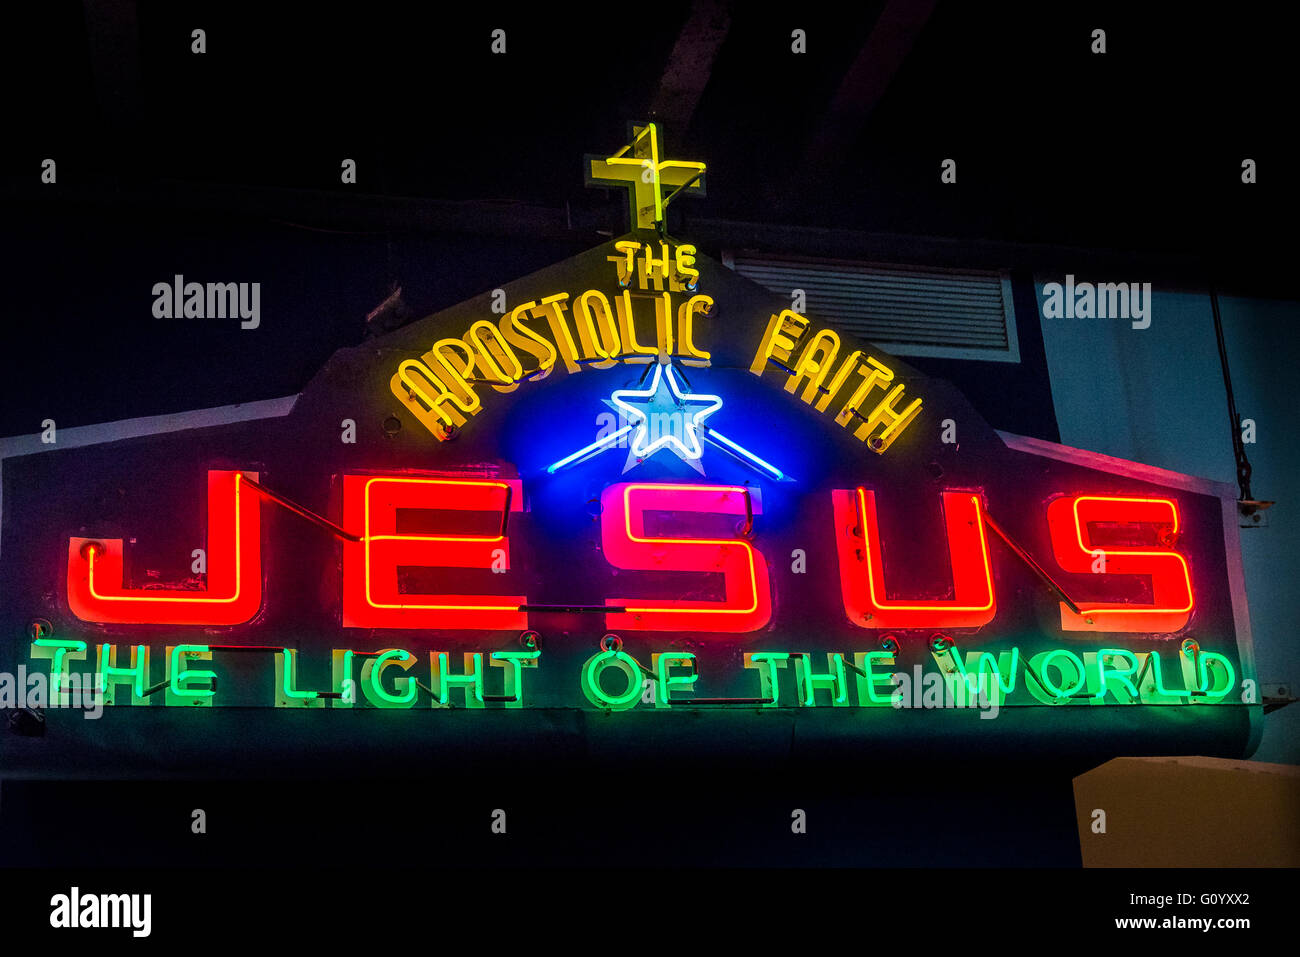 Jesus Apostolic Faith, vintage Neon sign MOV, Museum of Vancouver, Vancouver, British Columbia, Canada - Stock Image